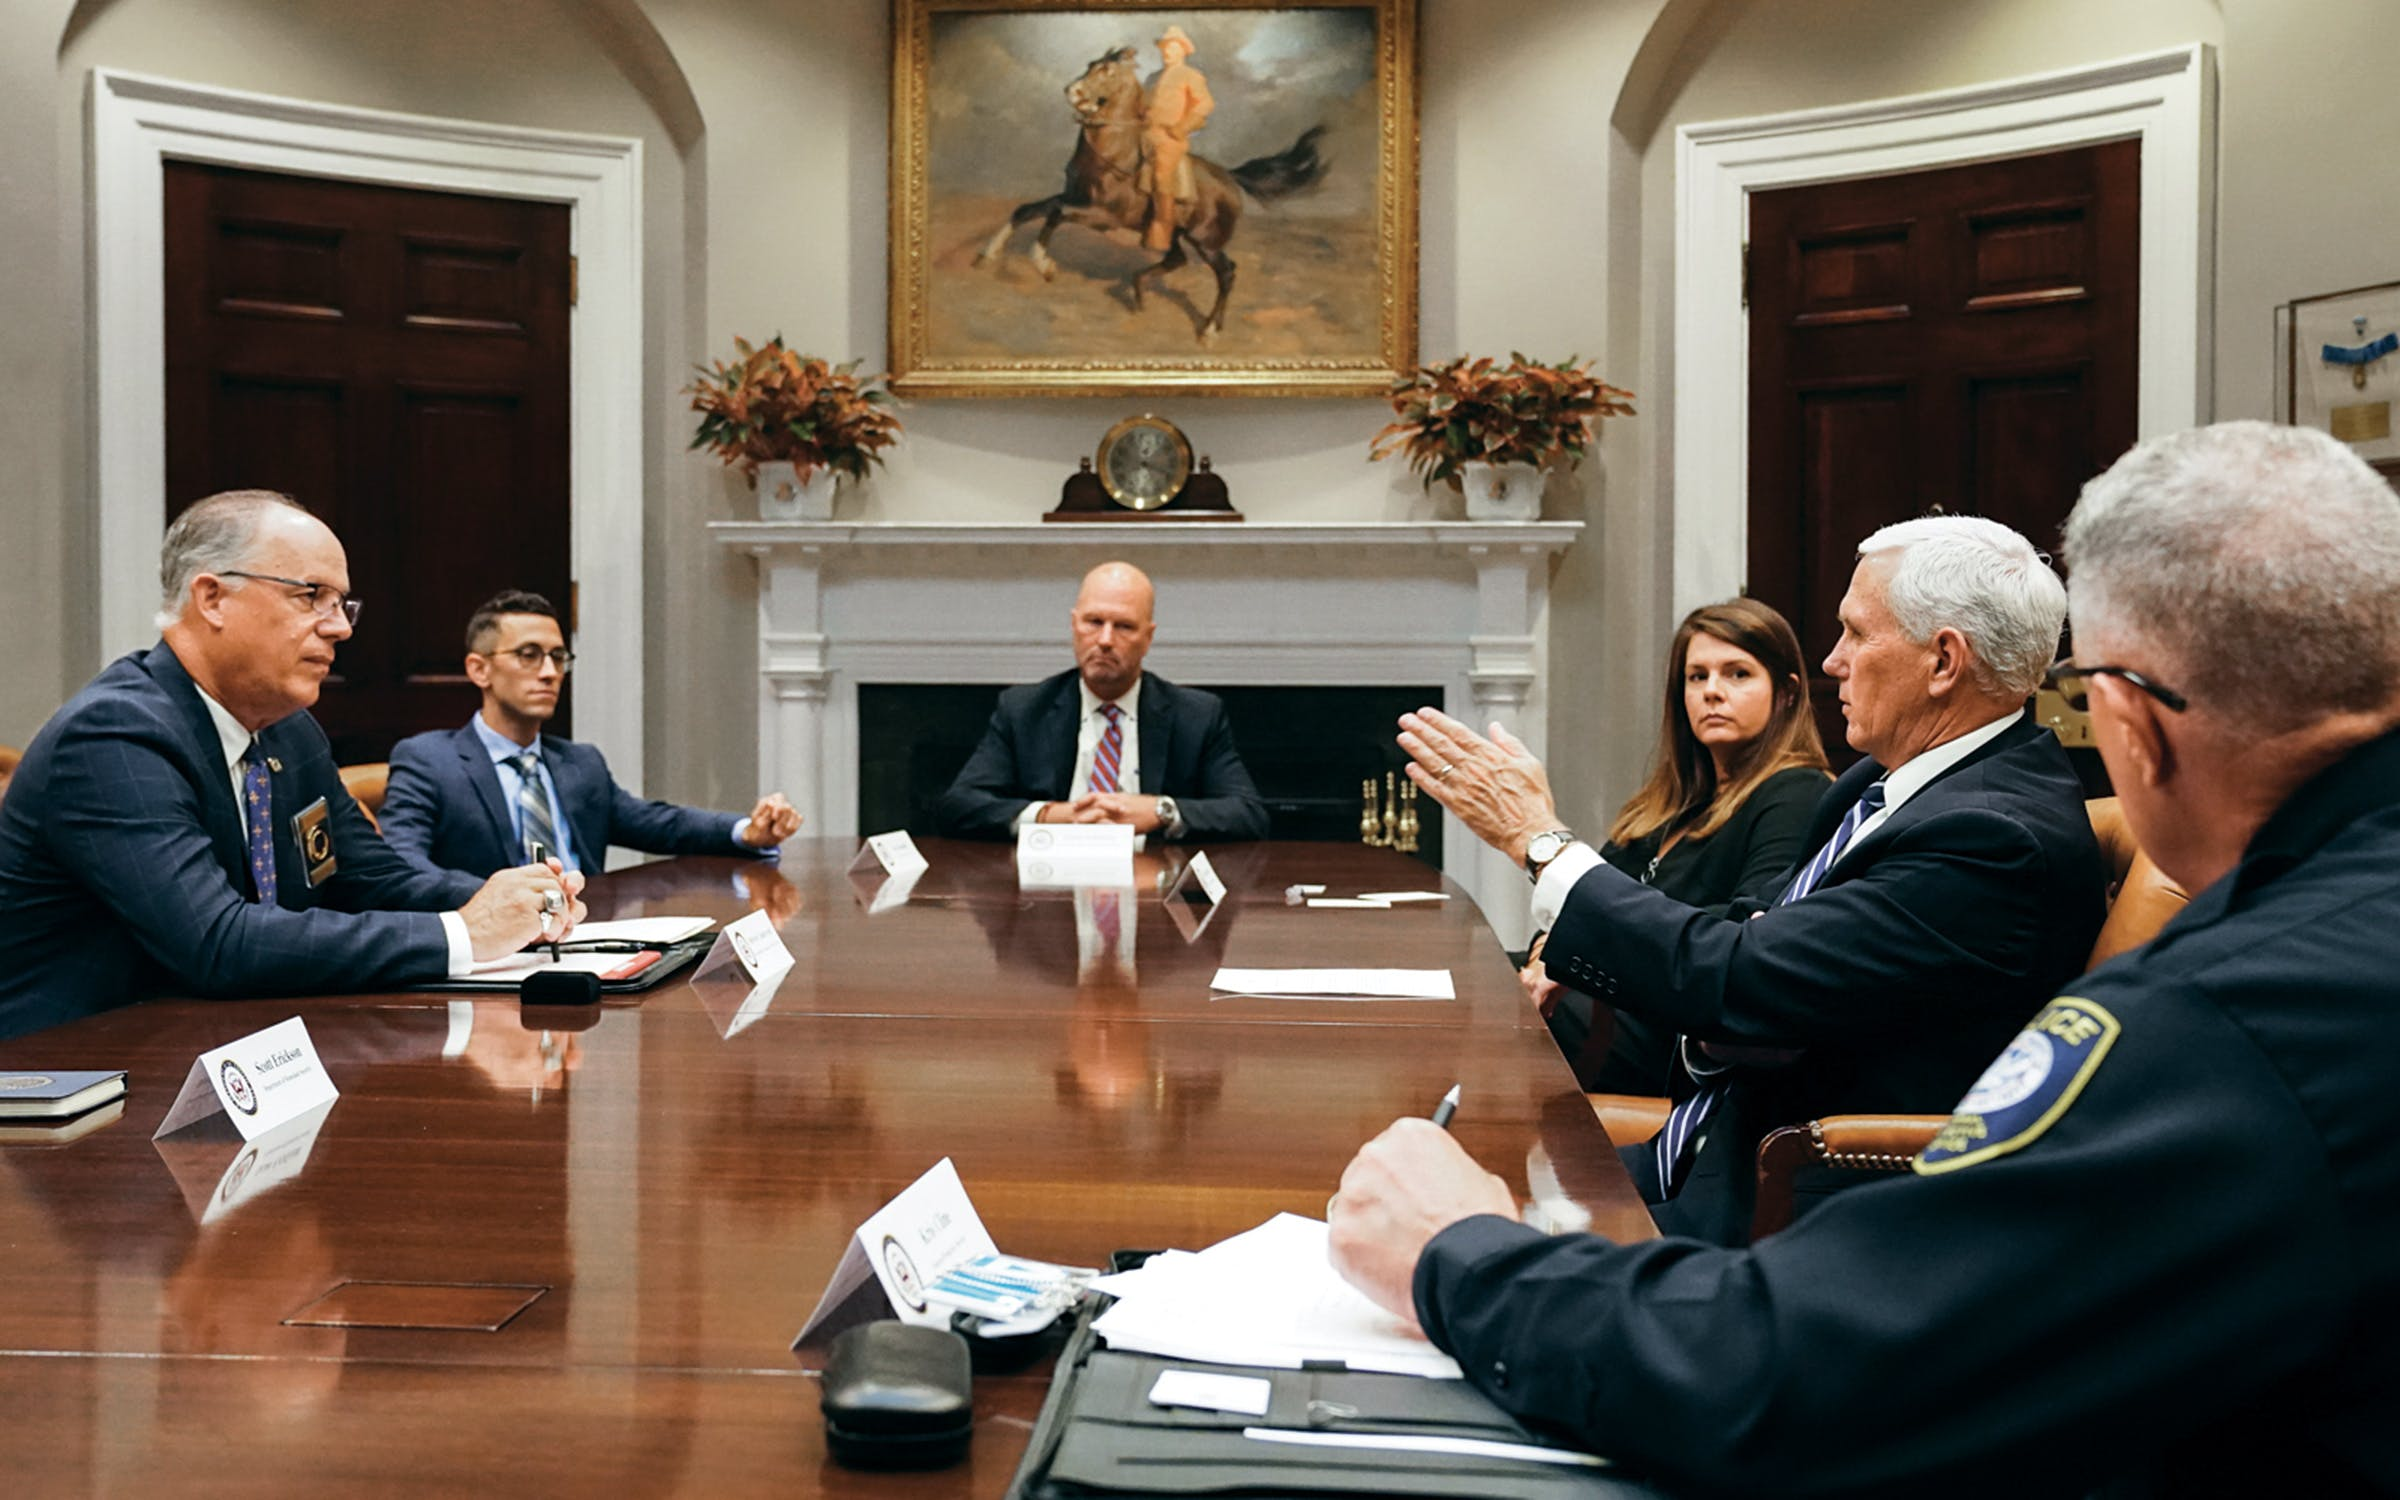 Gamaldi meeting with Vice President Mike Pence.